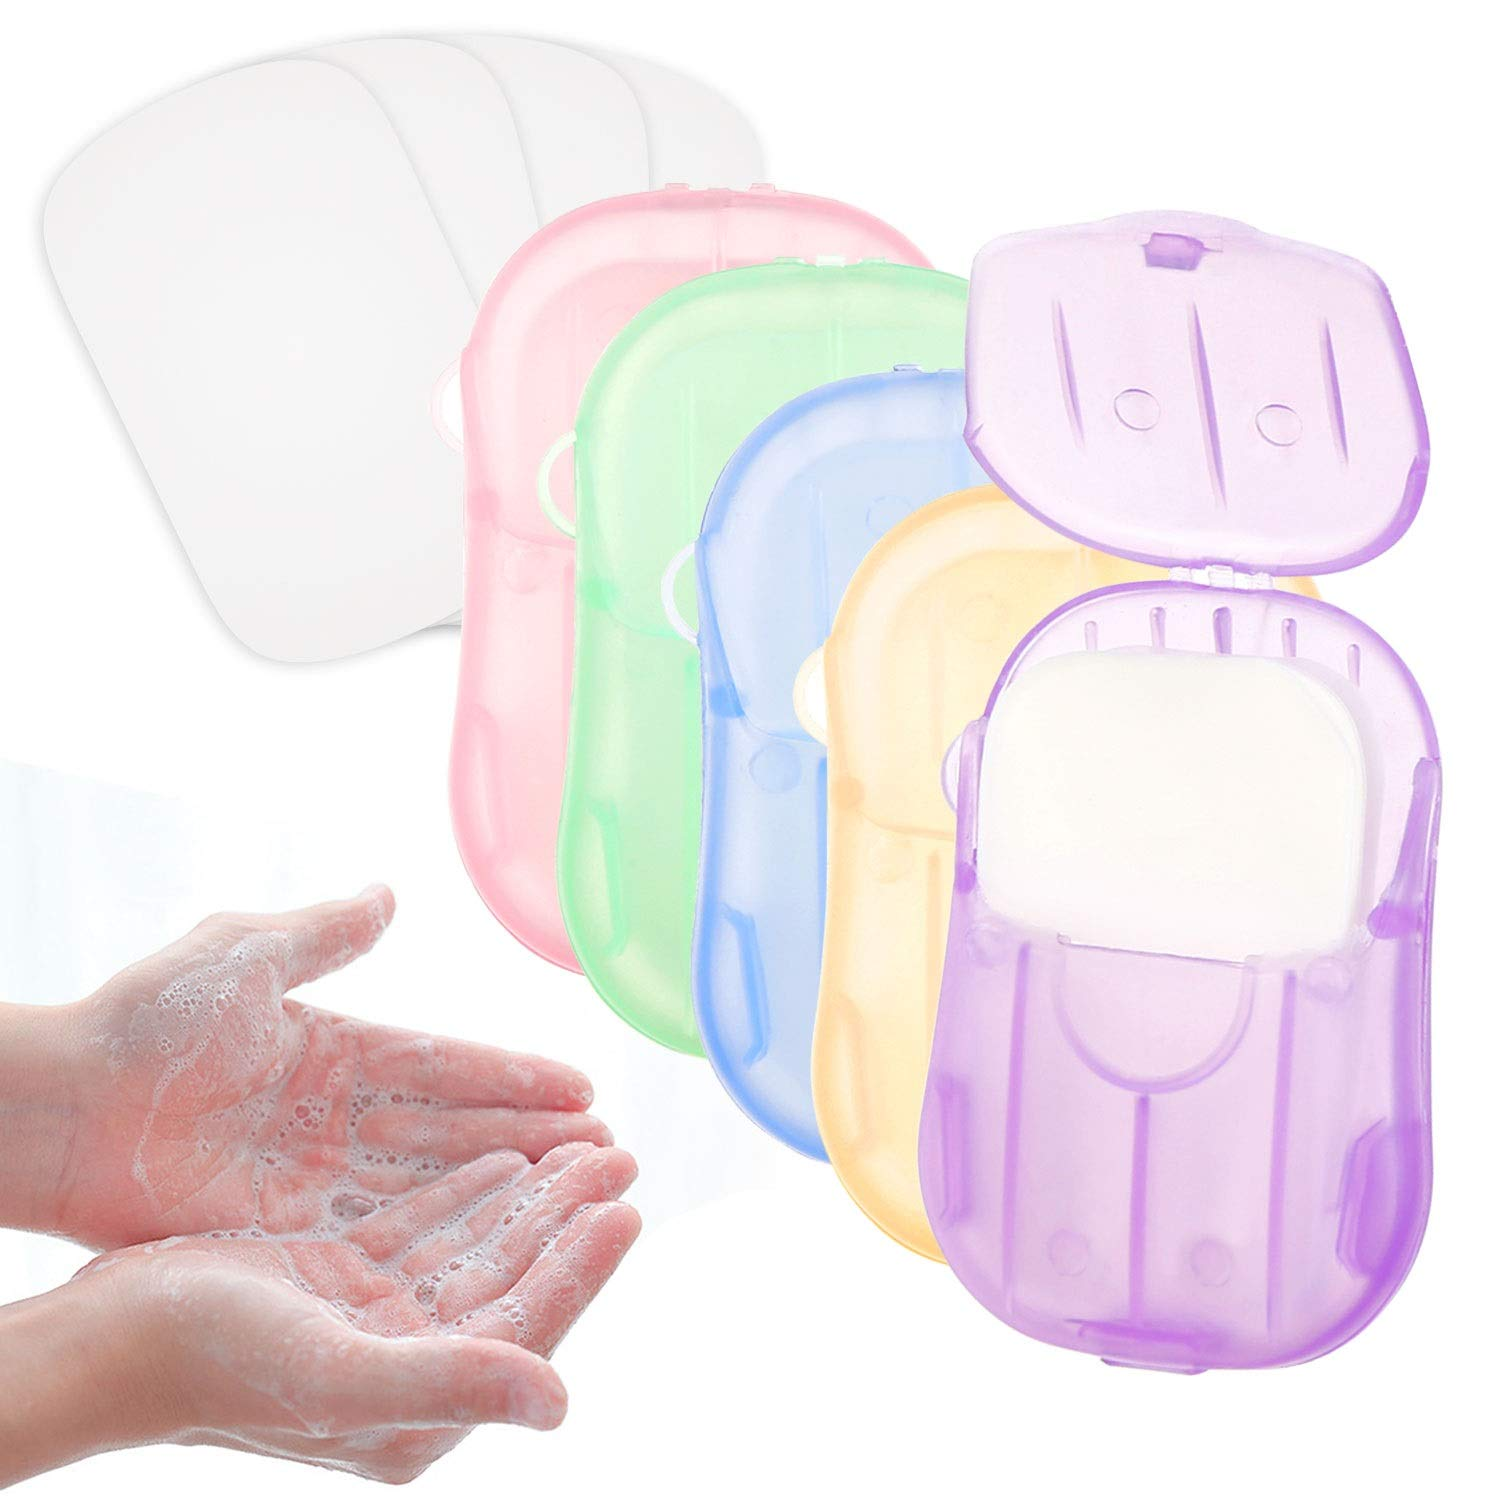 LOTSOF Hand Wash Portable Disposable Soap Paper Clean Hand Washing Bath Scented Natural Soft Foaming Washing Hand Bath Toiletry Soap for Travel Outdoor, Camping Hiking (5 Colors)